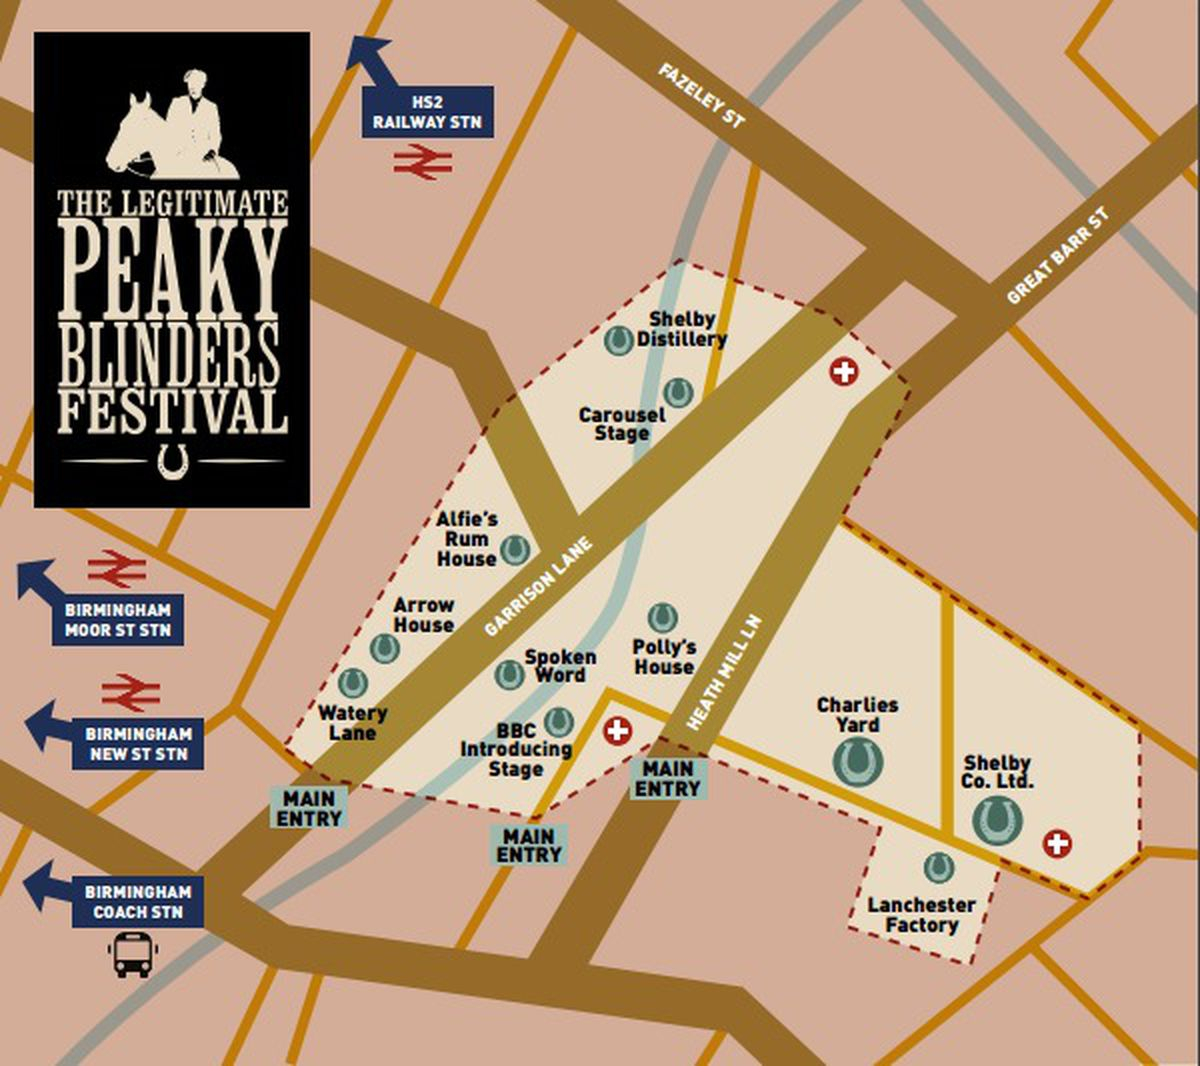 A site map of The Legitimate Peaky Blinders Festival